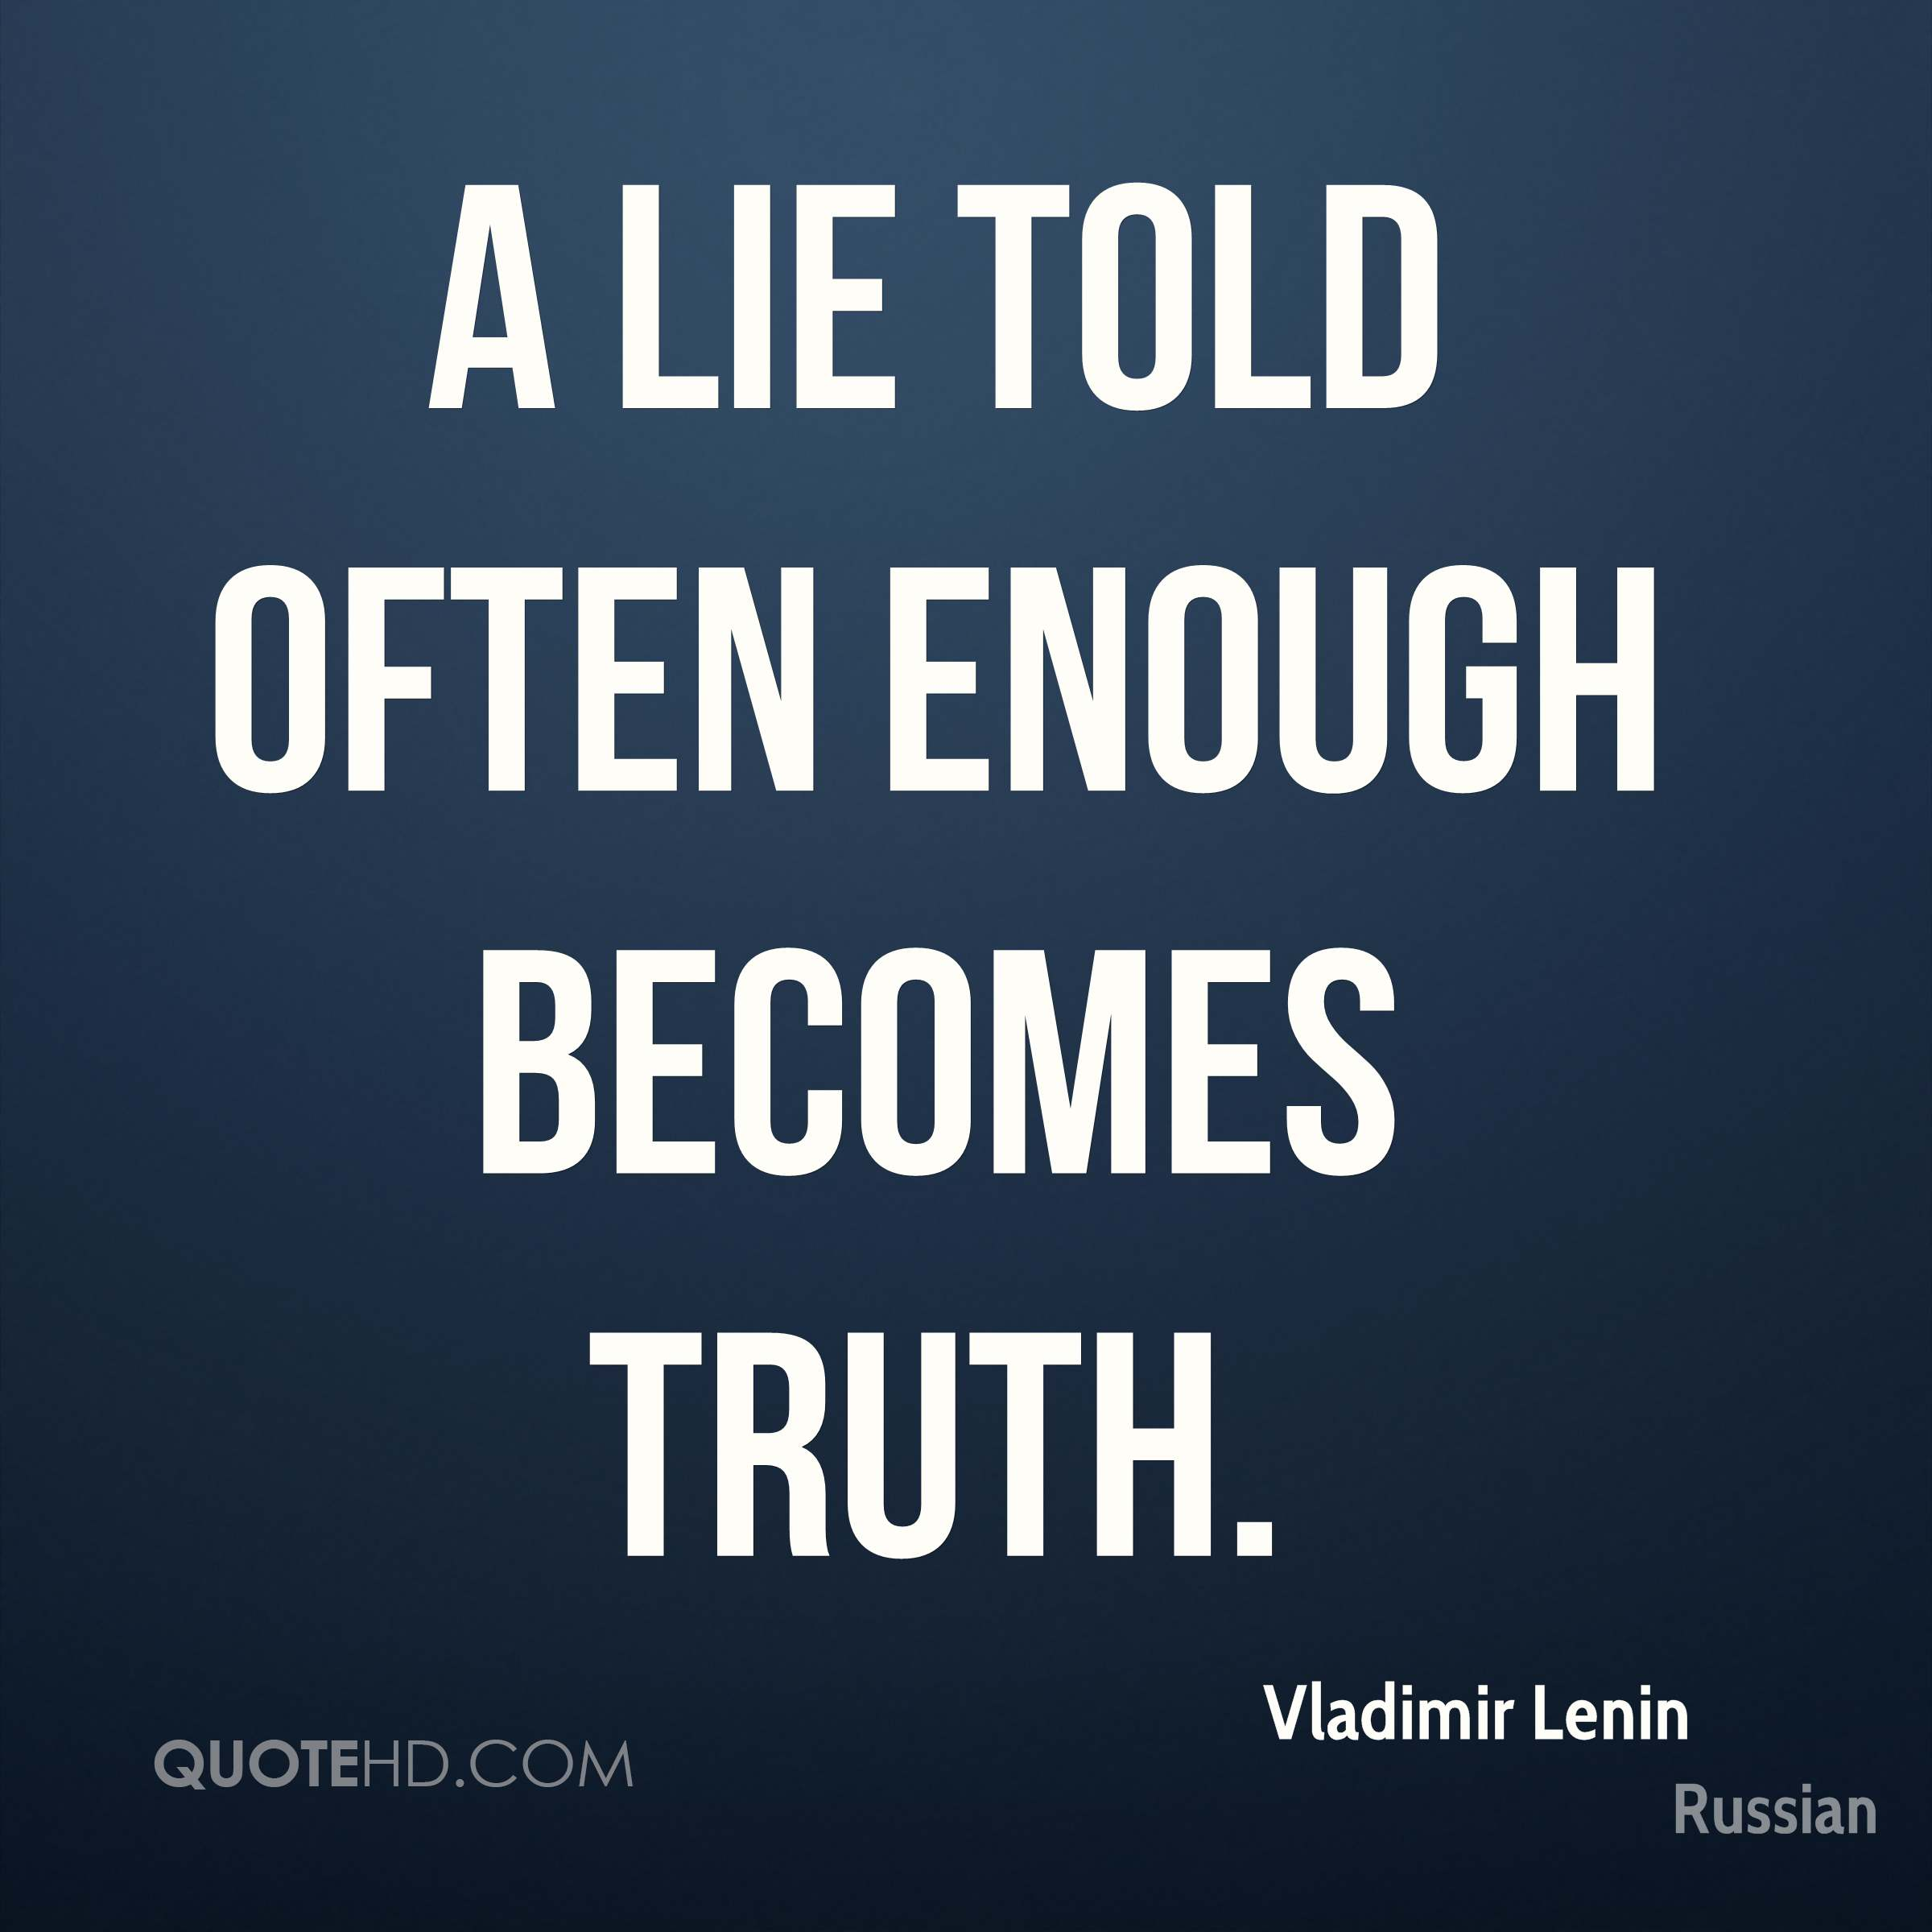 Good A Lie Told Often Enough Becomes Truth.